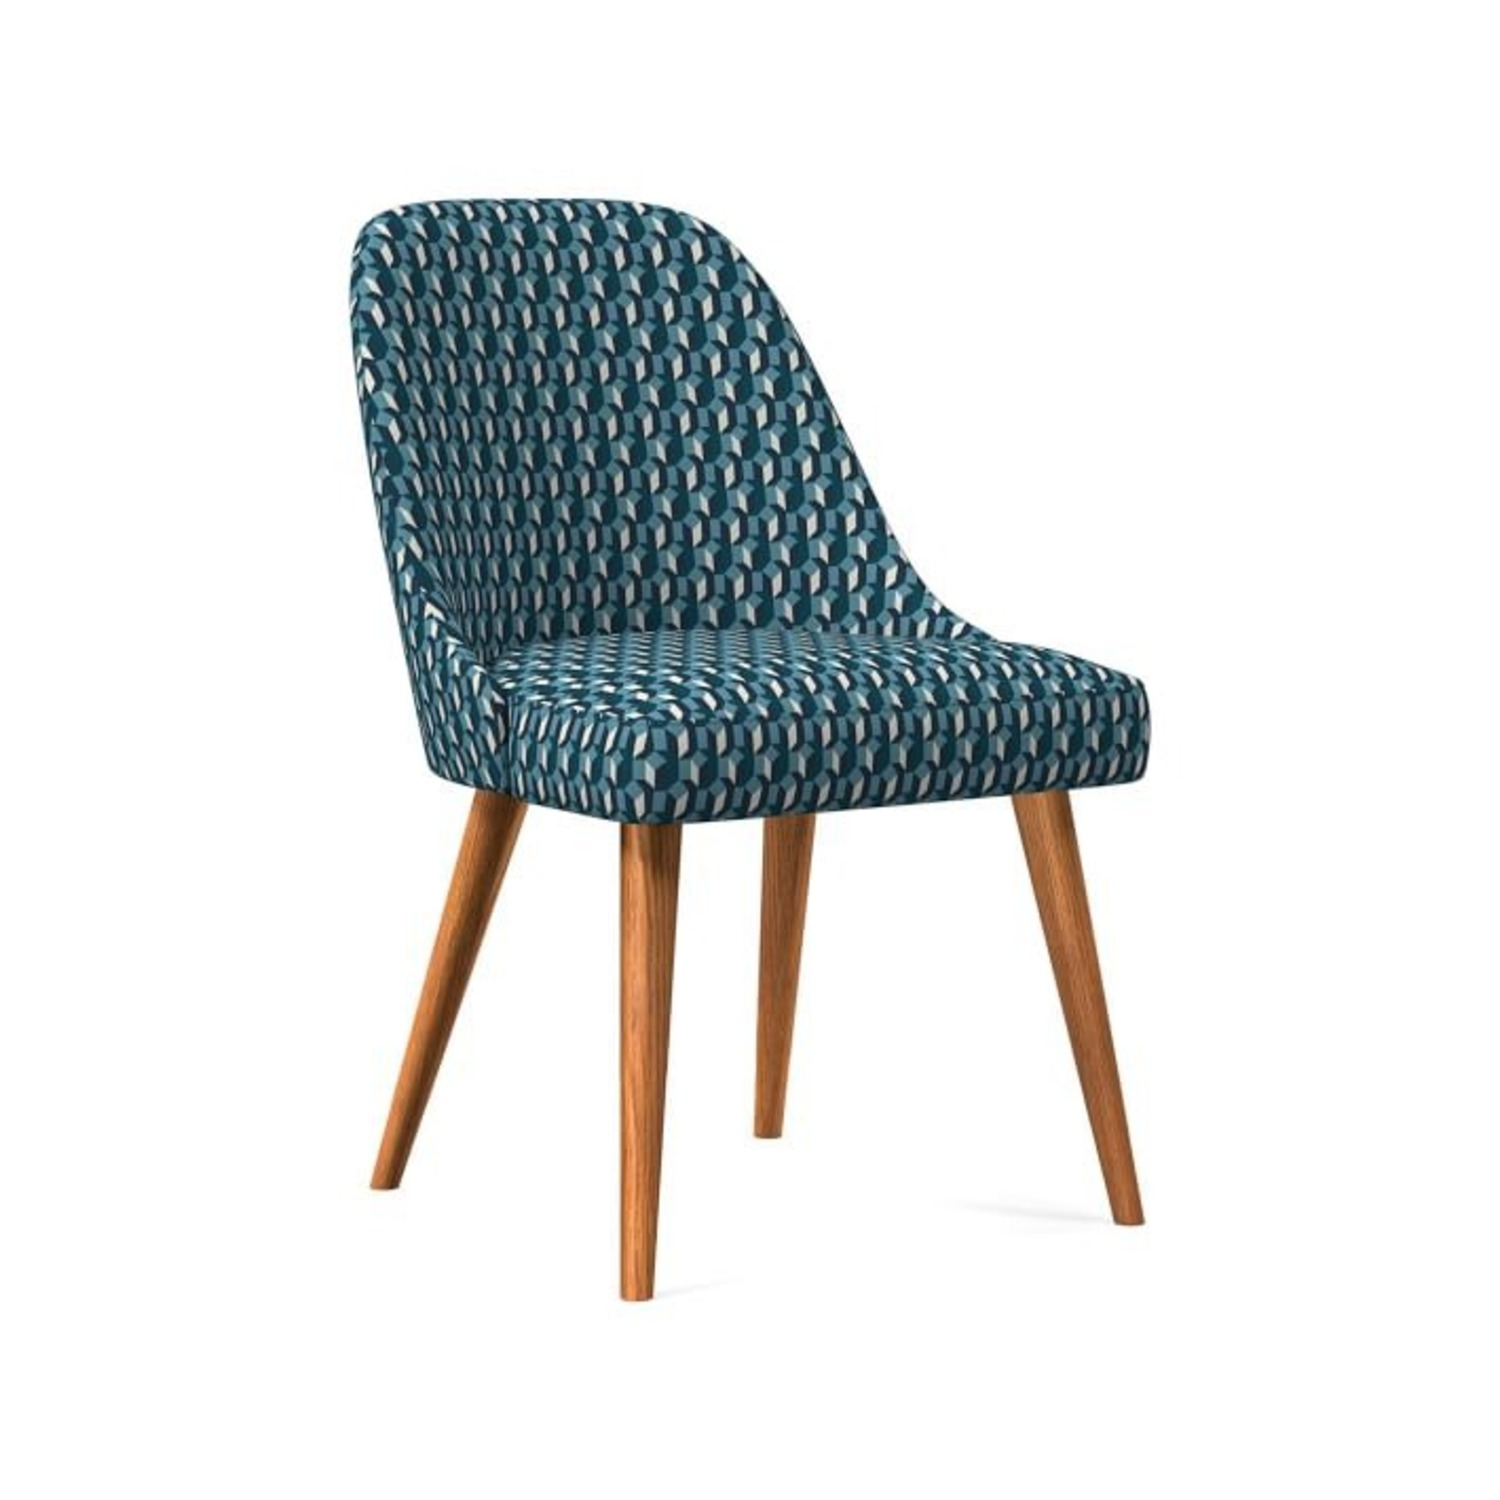 West Elm Mid-Century Upholstered Dining Chair - image-3